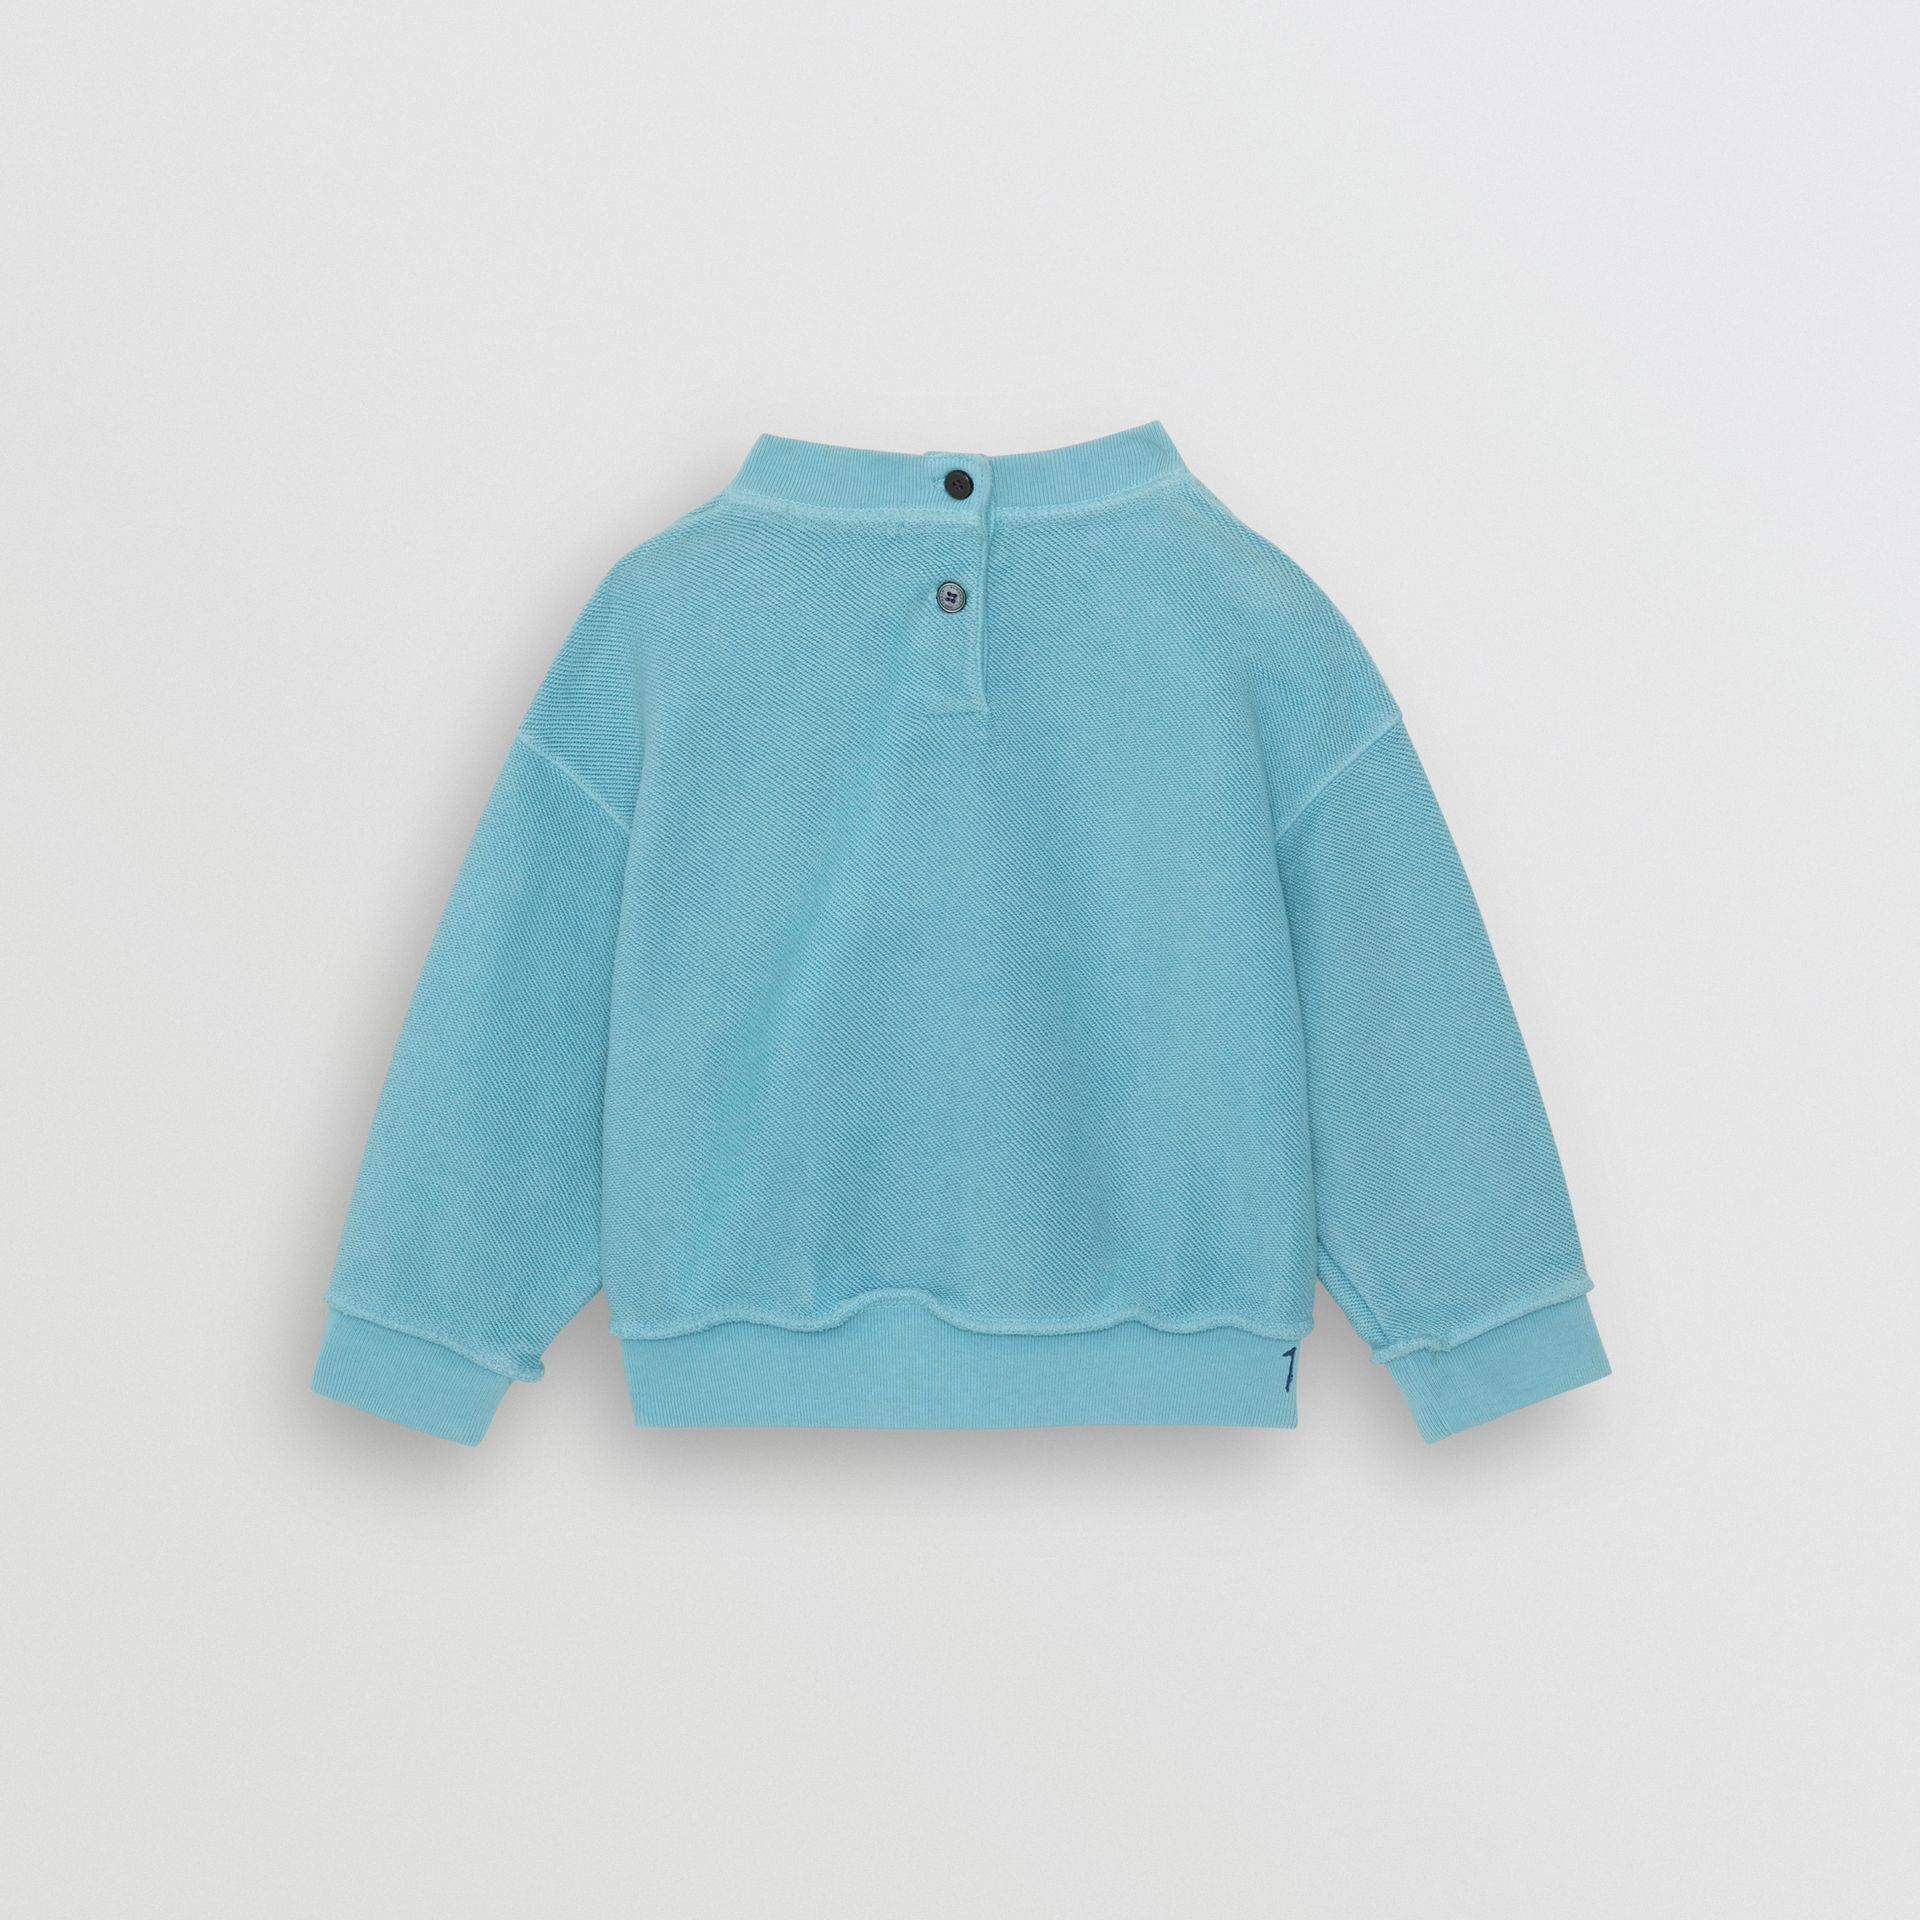 Sweat-shirt en coton avec logo au pochoir (Bleu Cyan Vif) - Enfant | Burberry - photo de la galerie 3